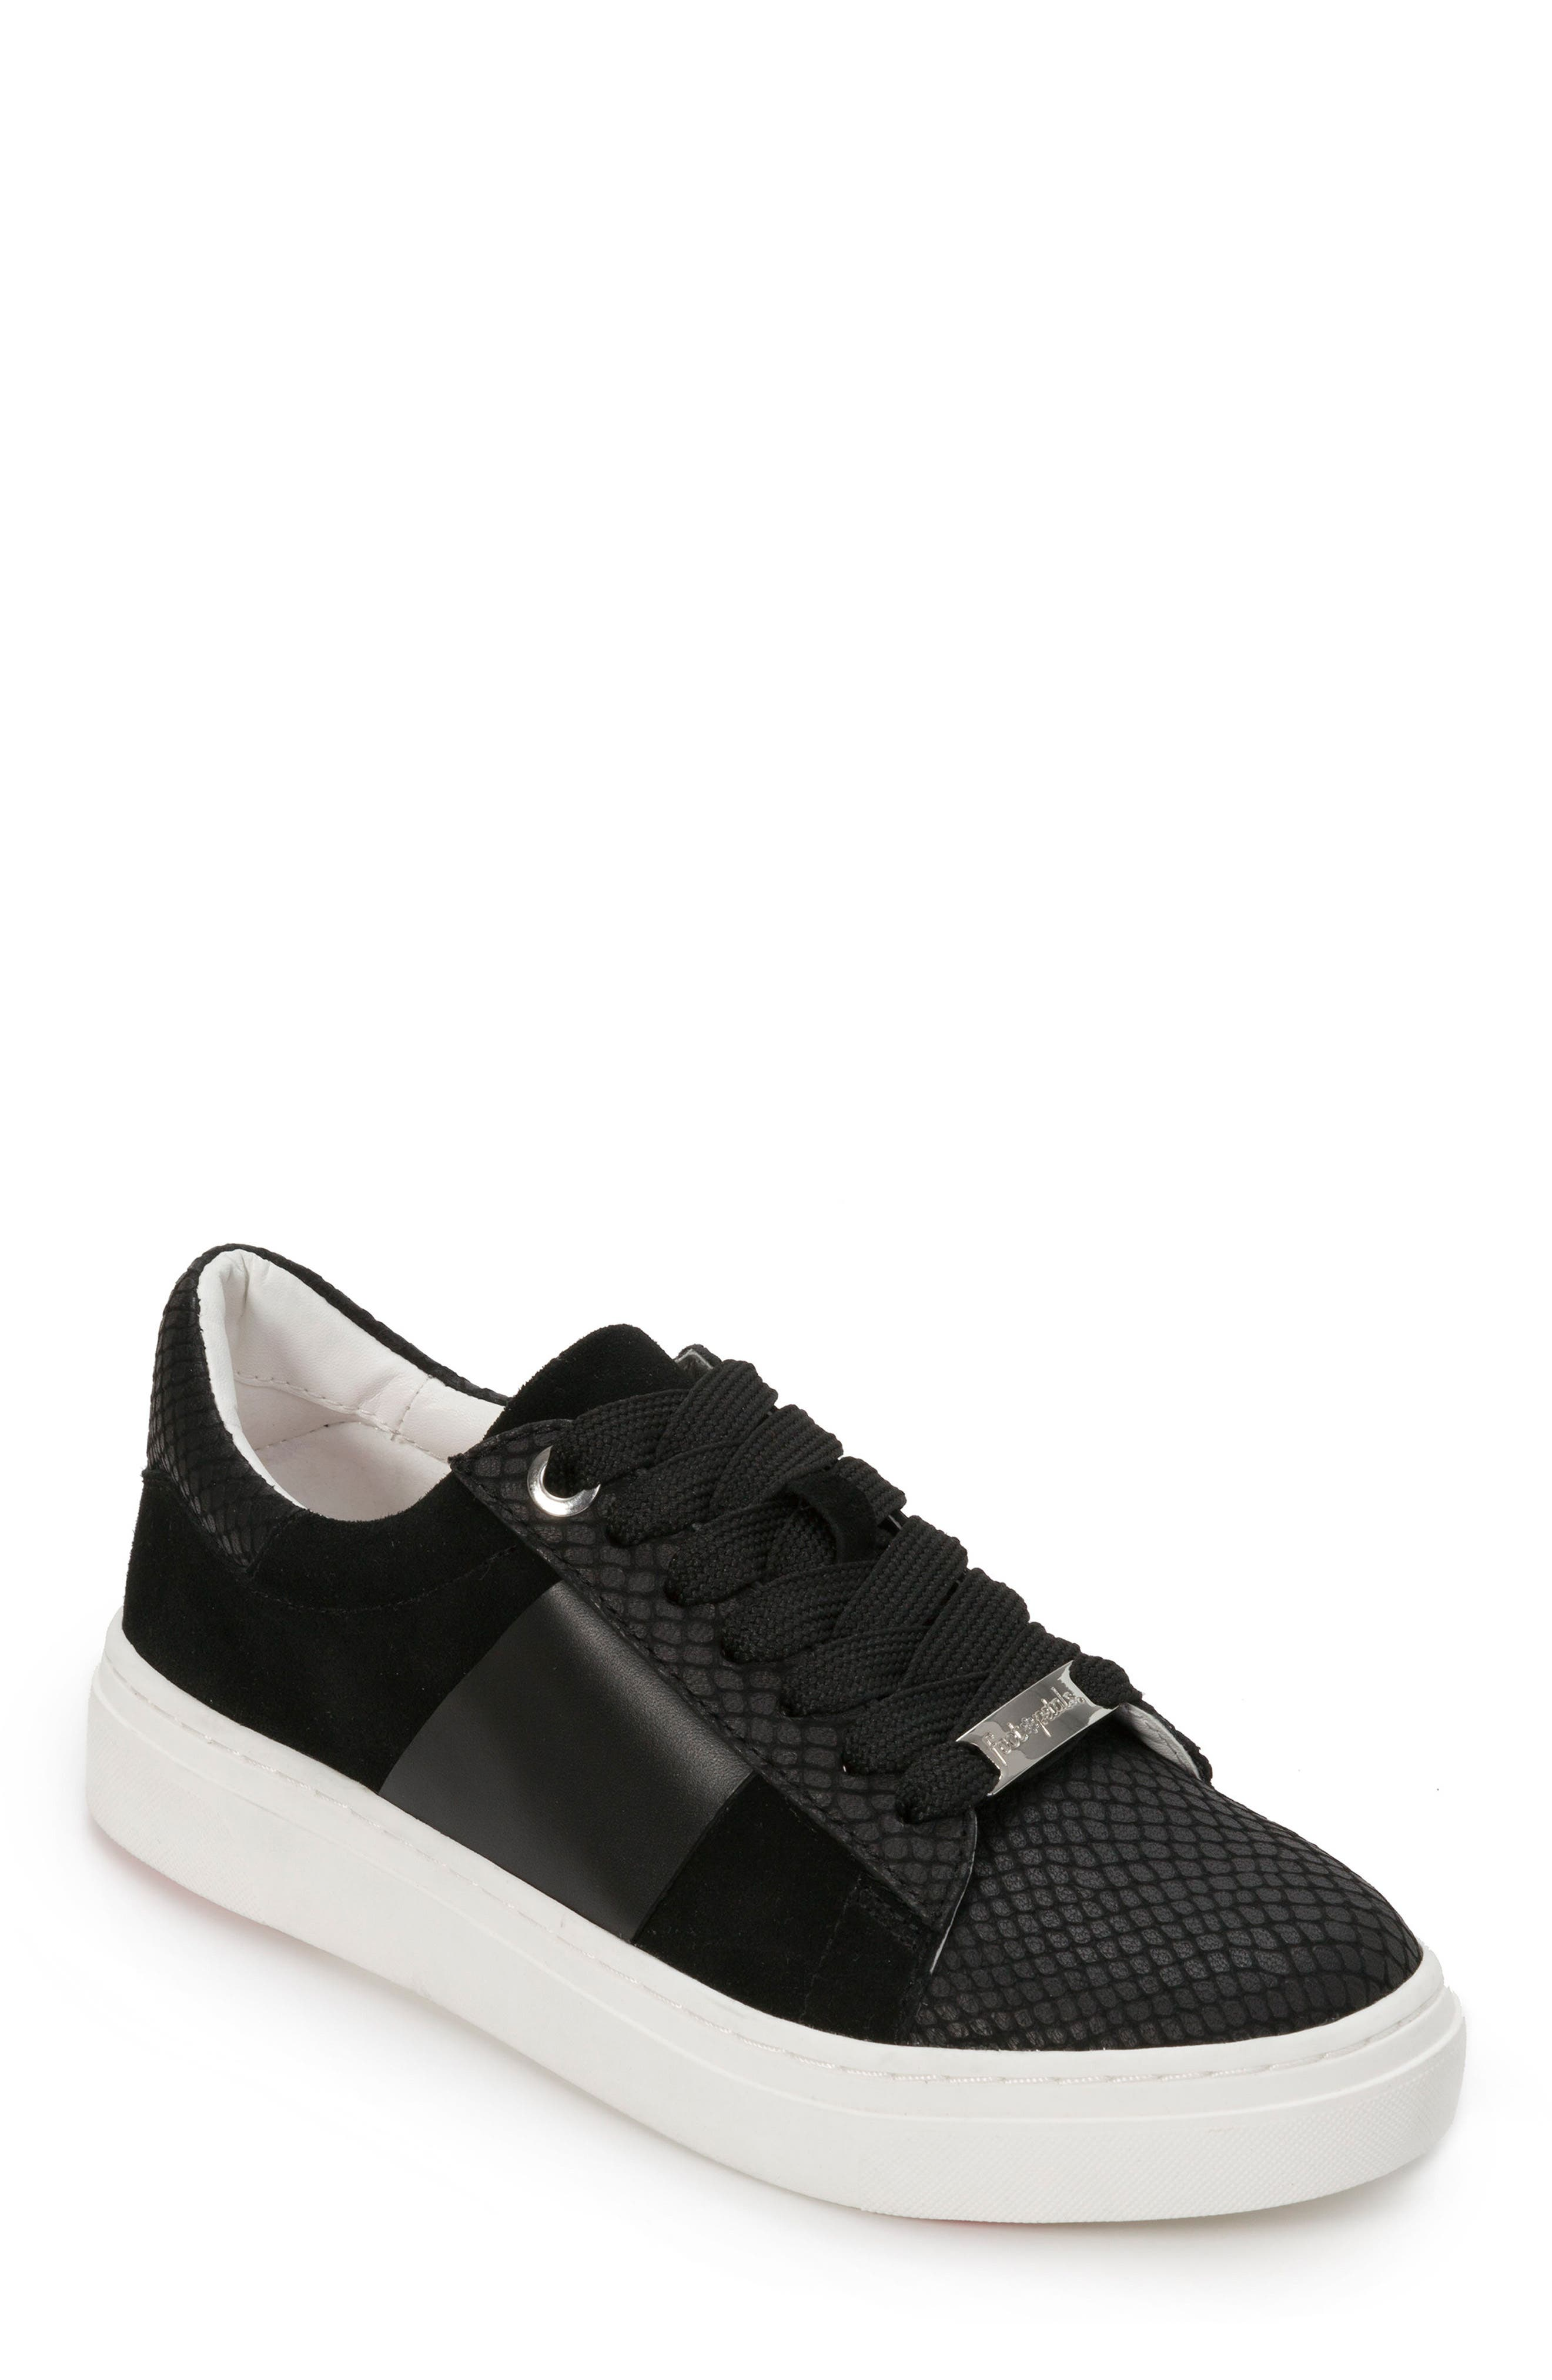 Fallon Sneaker,                         Main,                         color, BLACK SUEDE